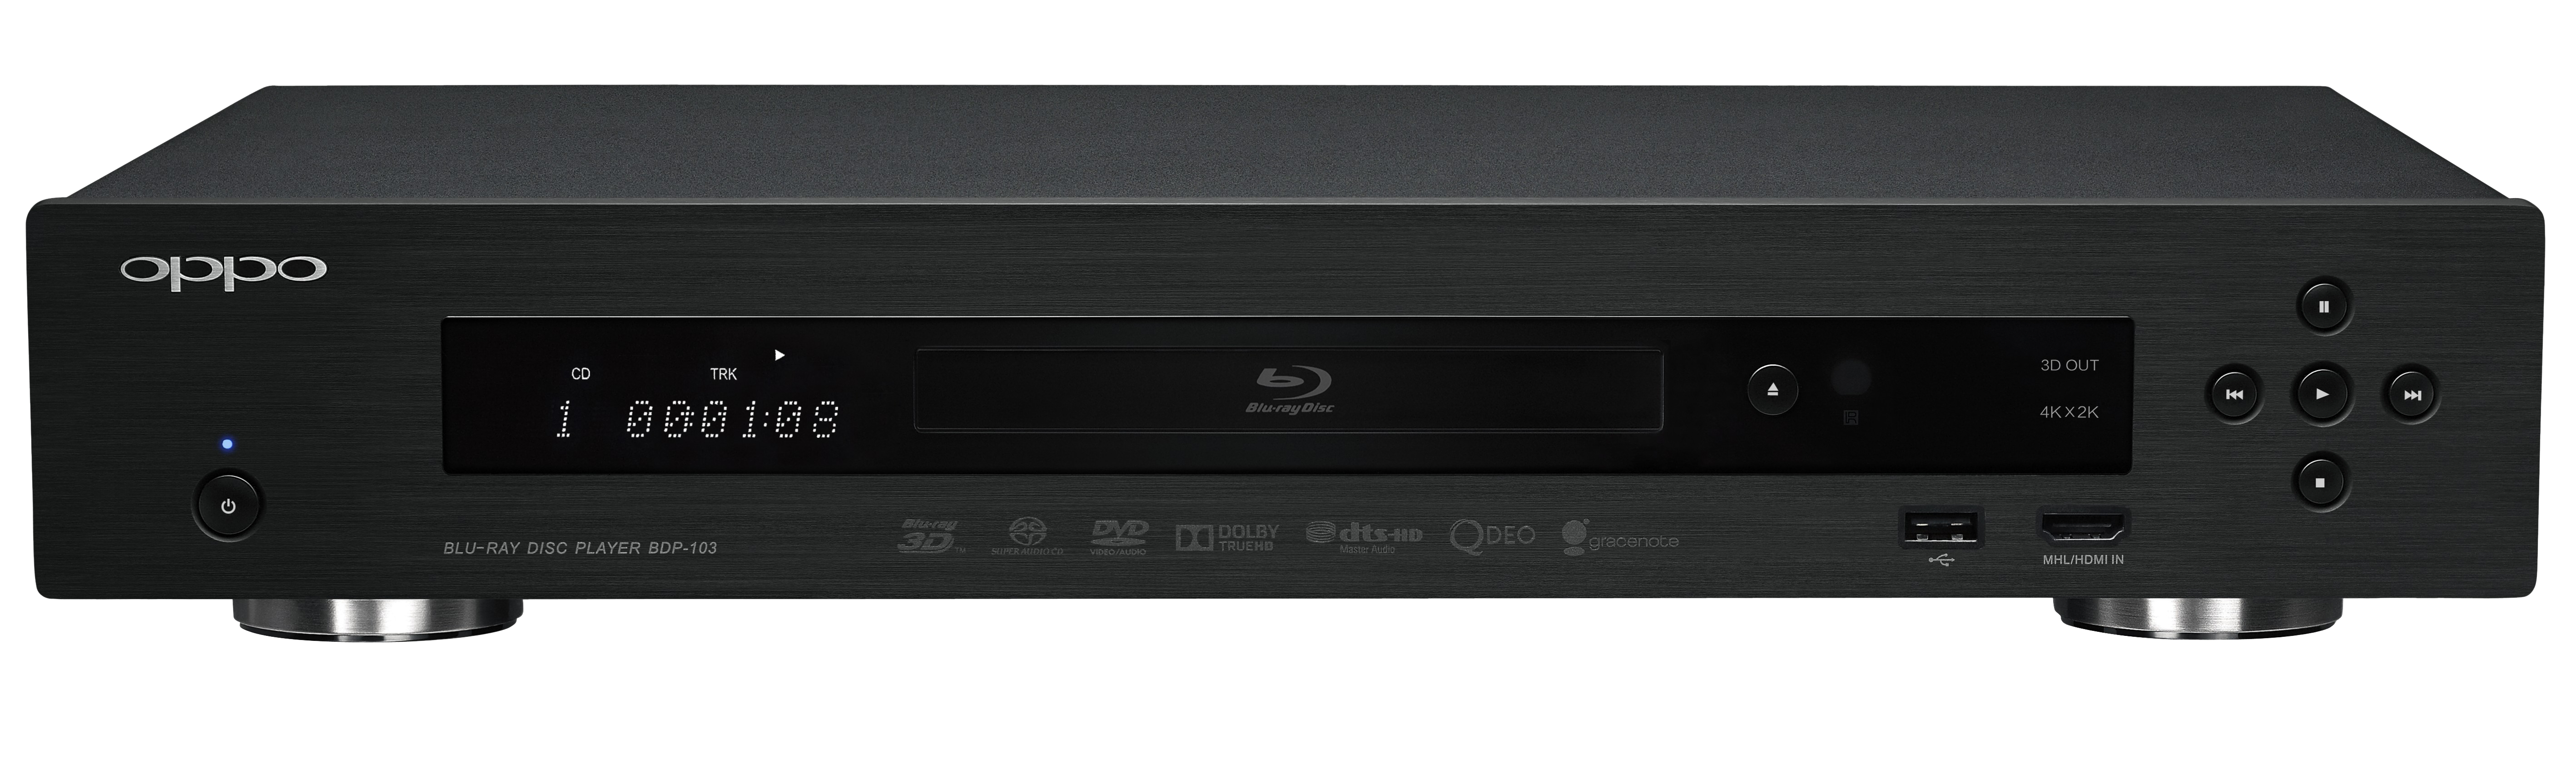 official oppo bdp 103 owner s th avs forum home theater updated 10 23 2012 official 33 1018 firmware released updated 09 26 2012 pre release players offered to select customers updated 08 05 2012 bdp 103